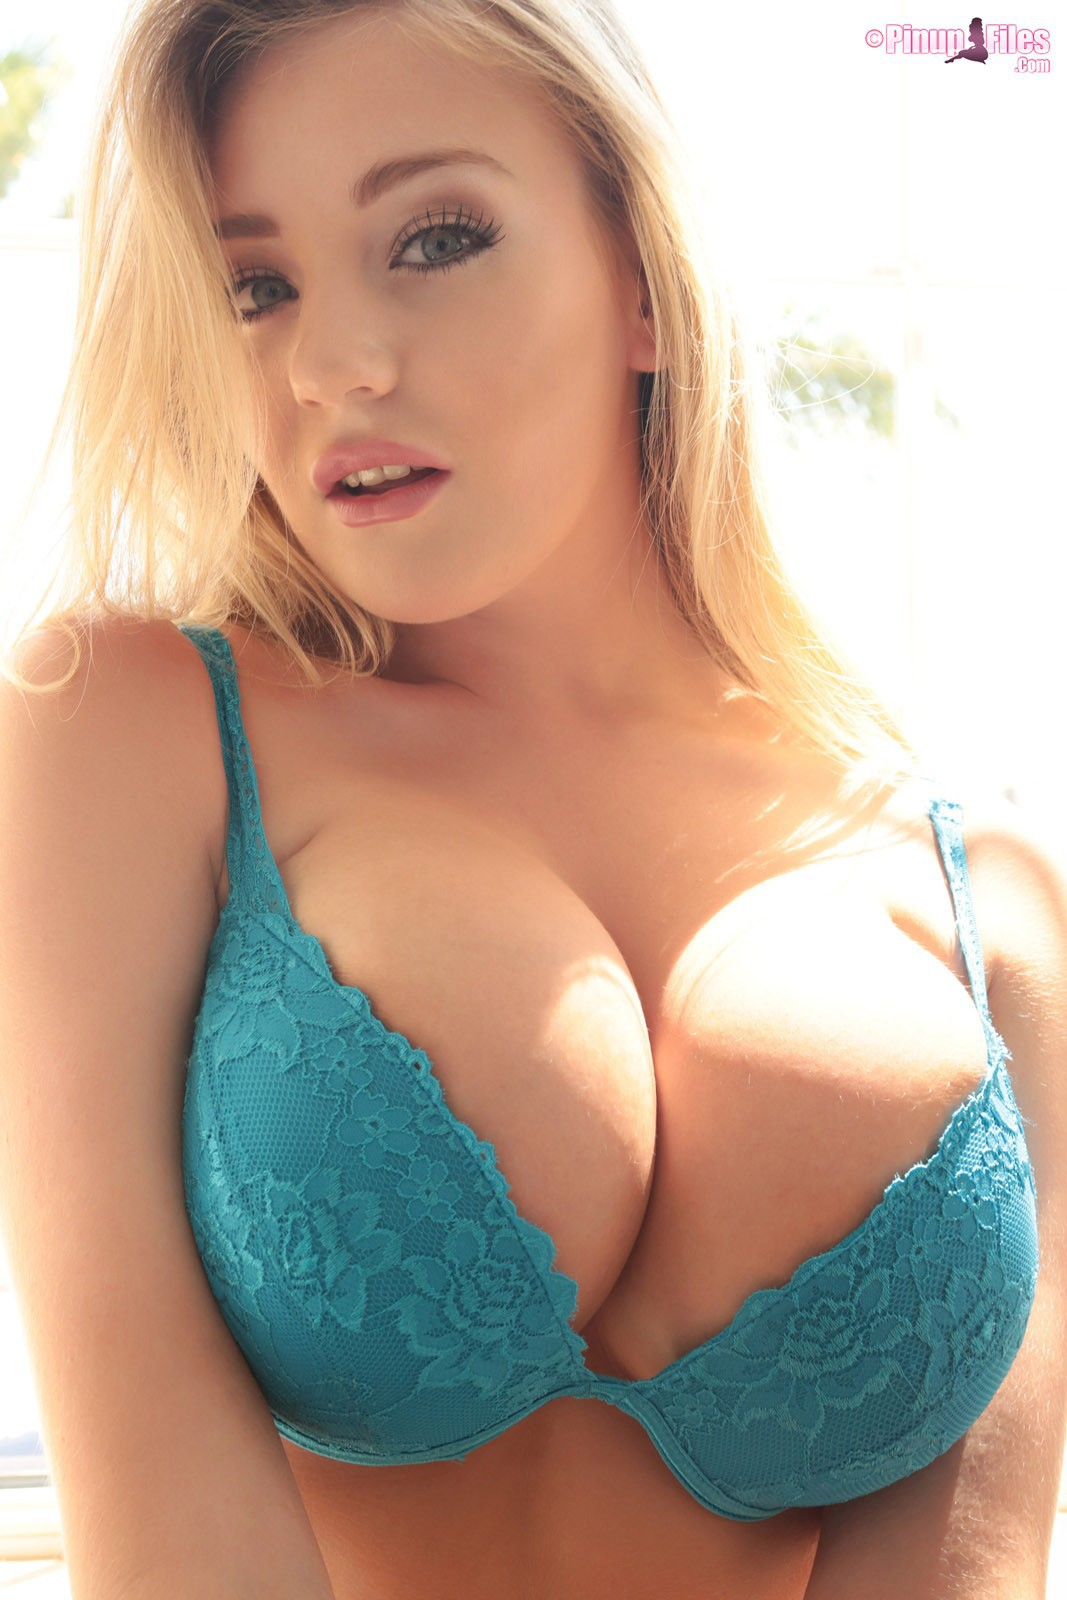 Sarah randall models her big sexy boobs